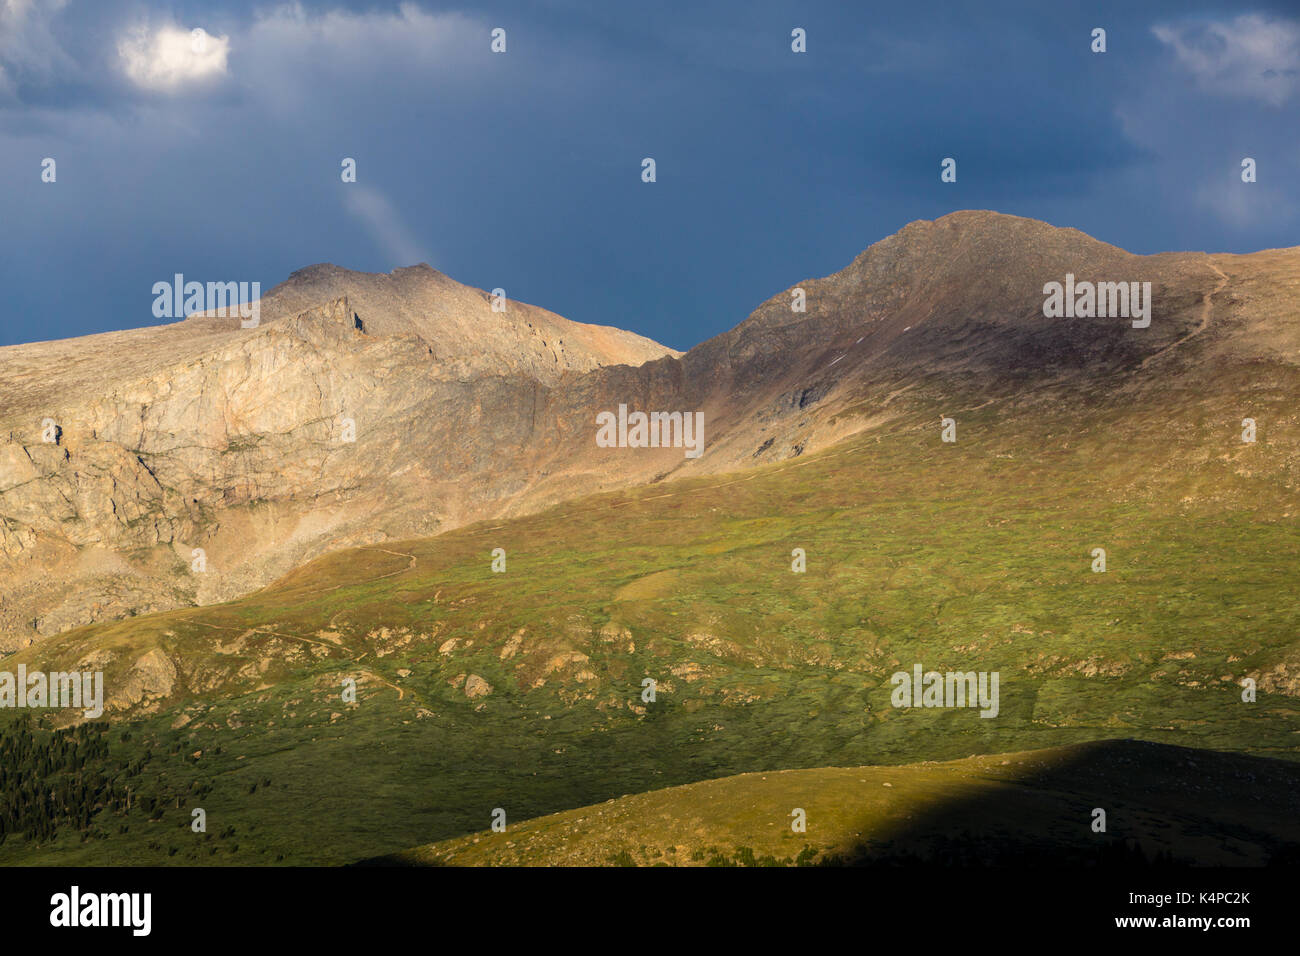 The hiking trail to the summit of Mount Bierstadt, one of Colorado's most popular 14ers. - Stock Image